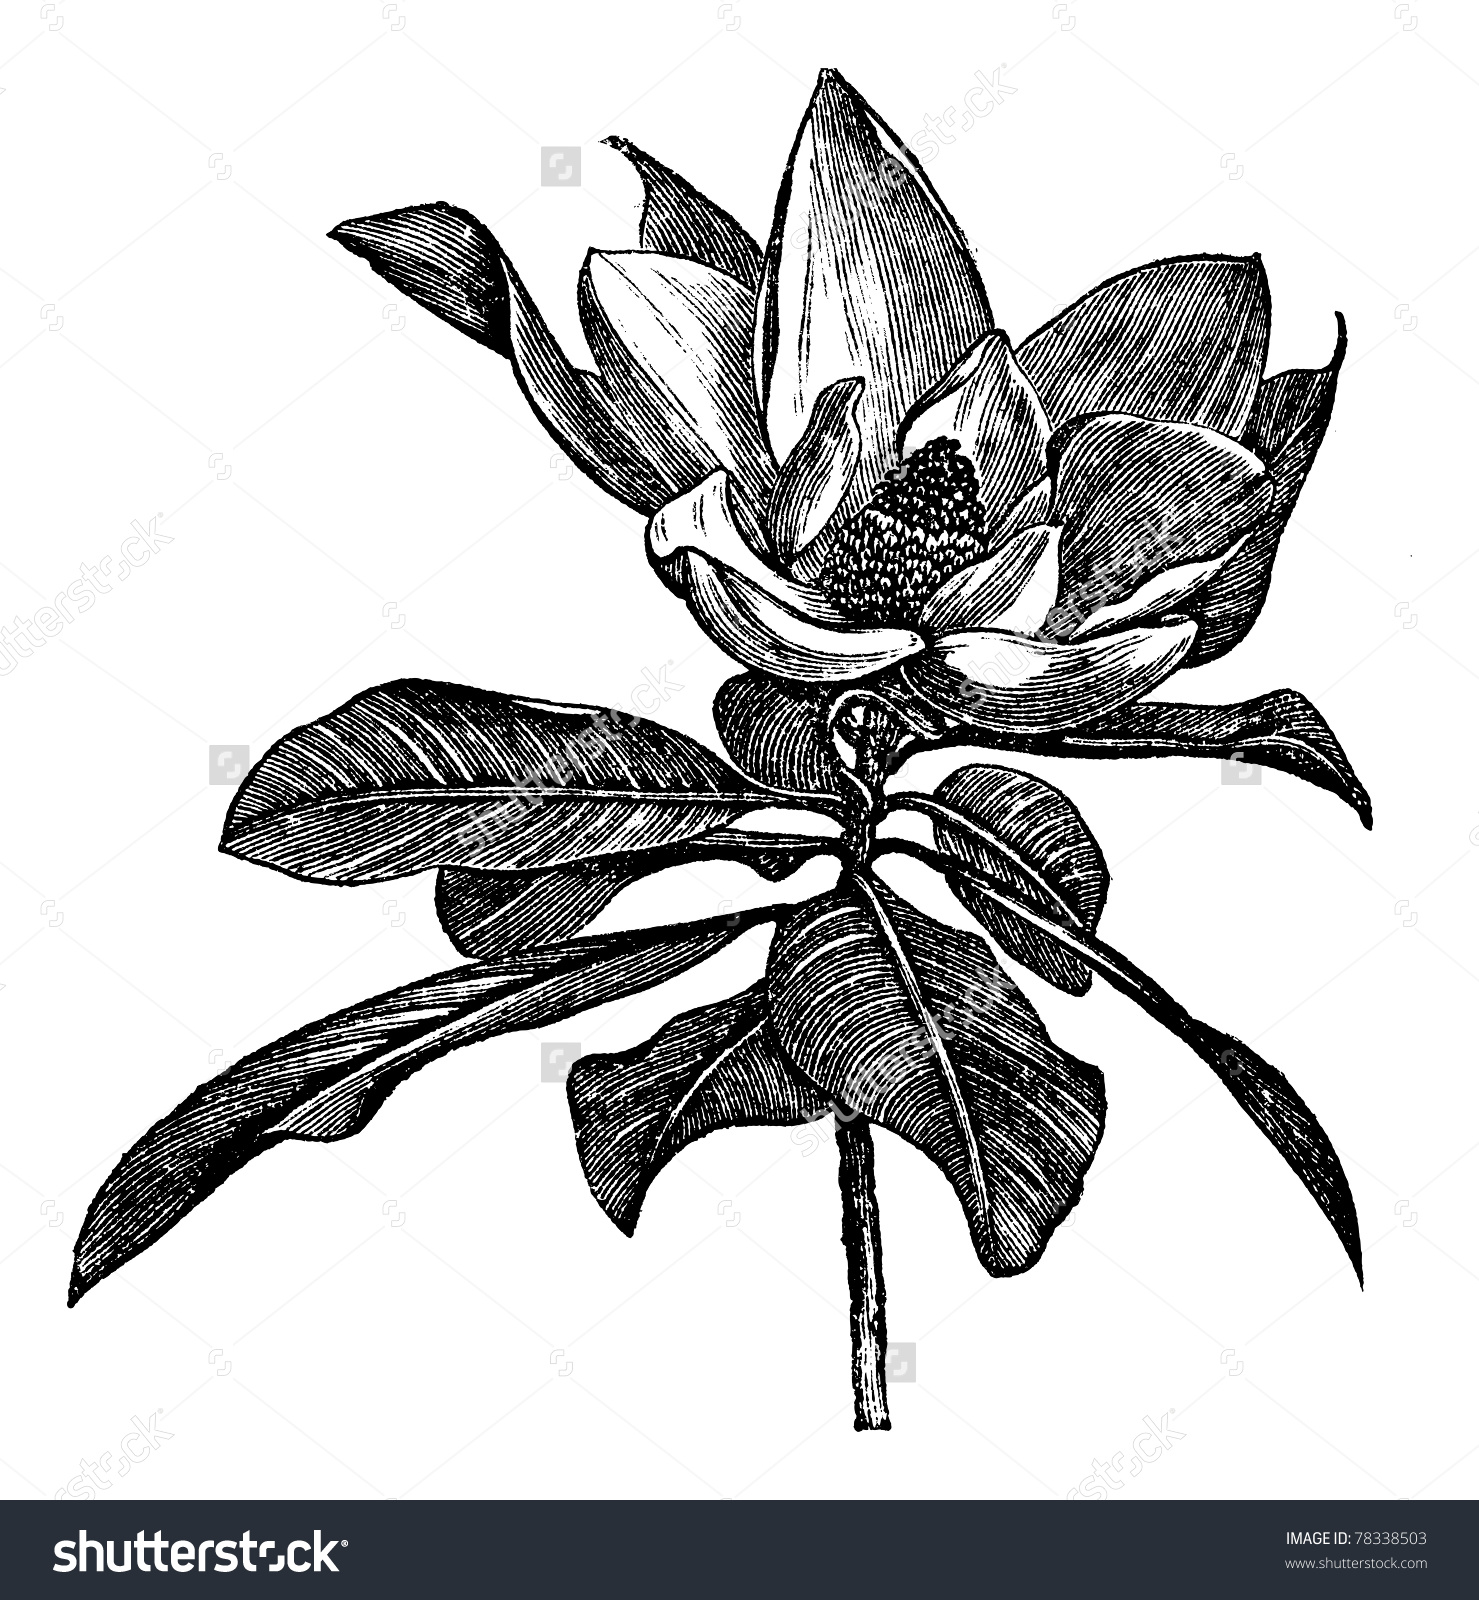 Grandiflora clipart #8, Download drawings